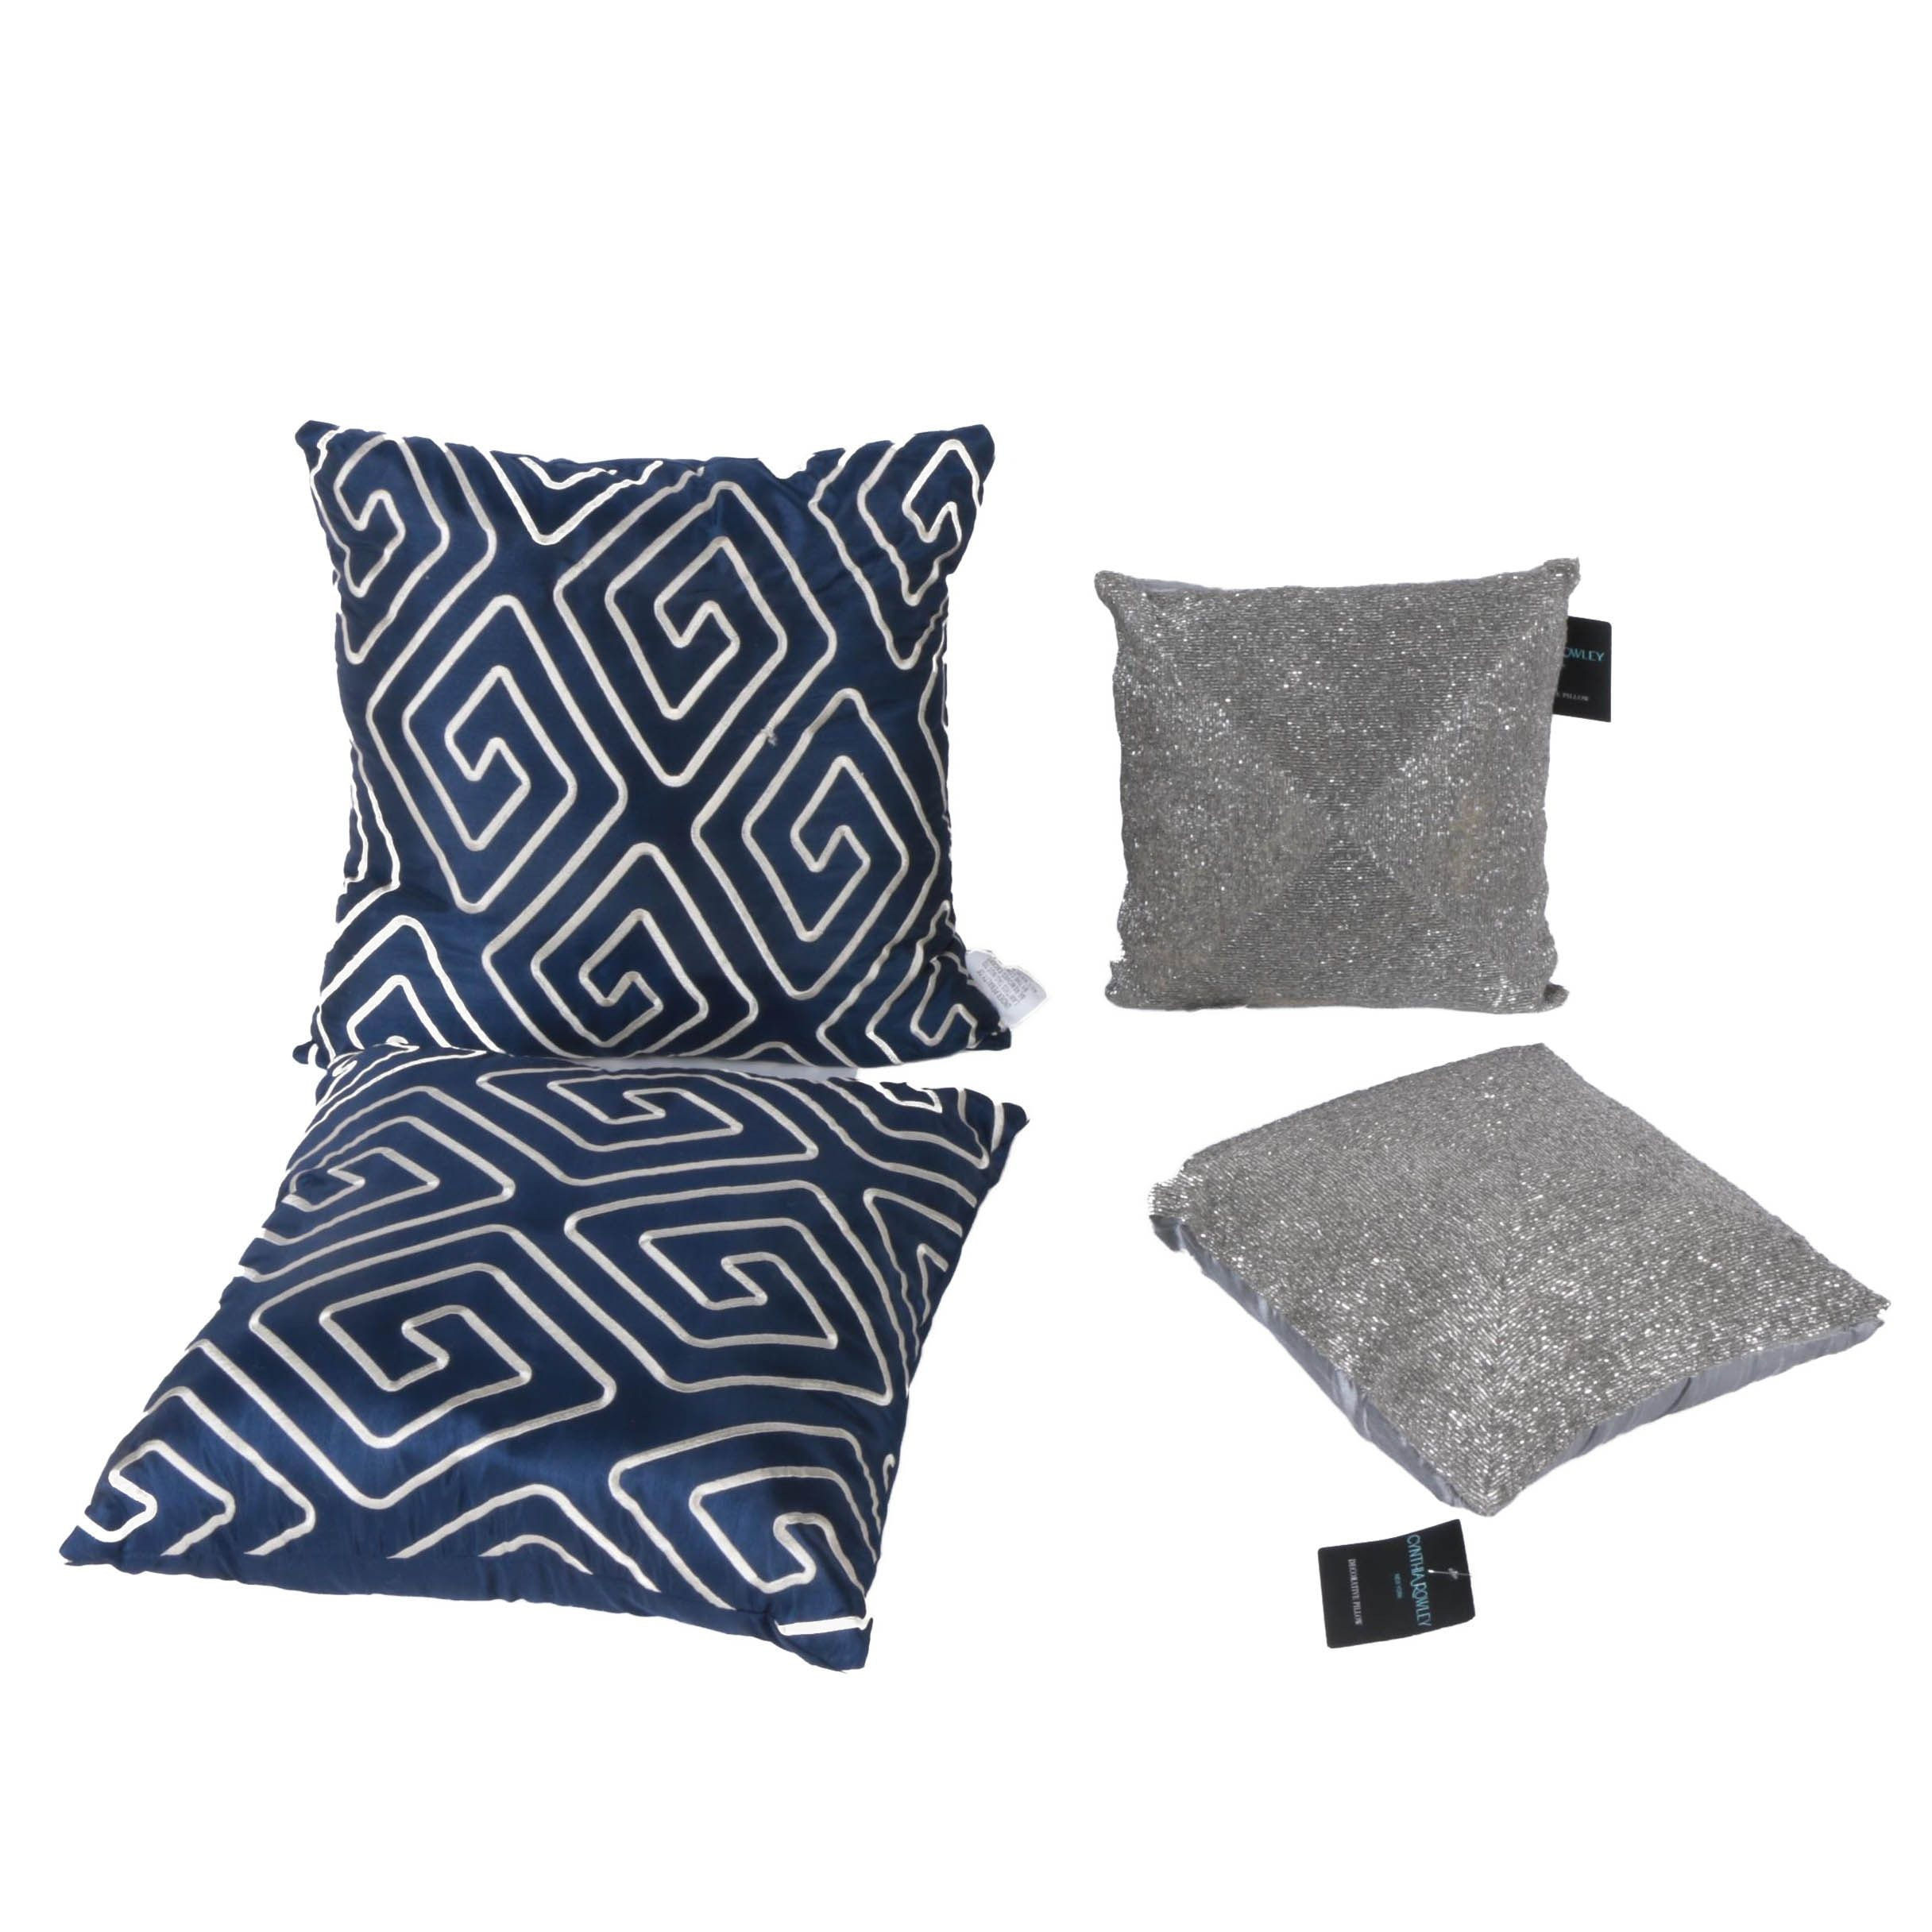 Collection of Four Decorative Throw Pillows Including Cynthia Rowley